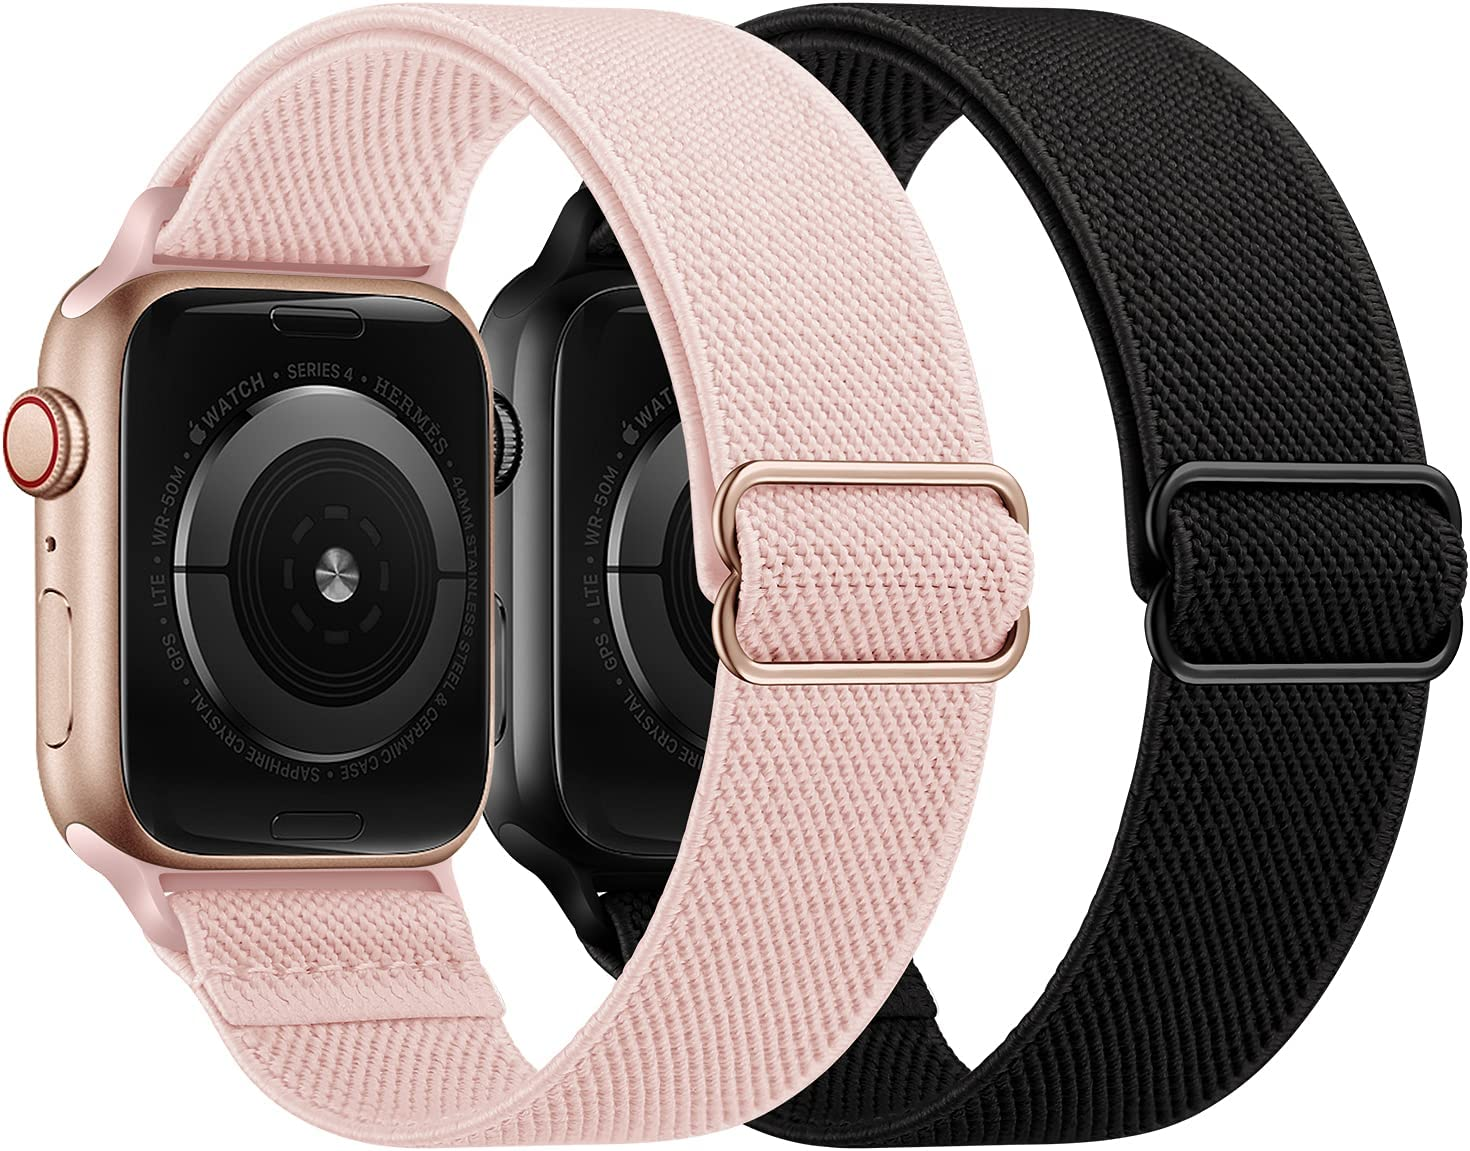 OUHENG 2 Pack Stretchy Band Compatible with Apple Watch Bands 40mm 38mm 44mm 42mm, Elastic Braided Nylon Sport Stretch Solo Loop Strap for iWatch SE Series 6/5/4/3/2/1, Pink Sand/Black, 40/38mm